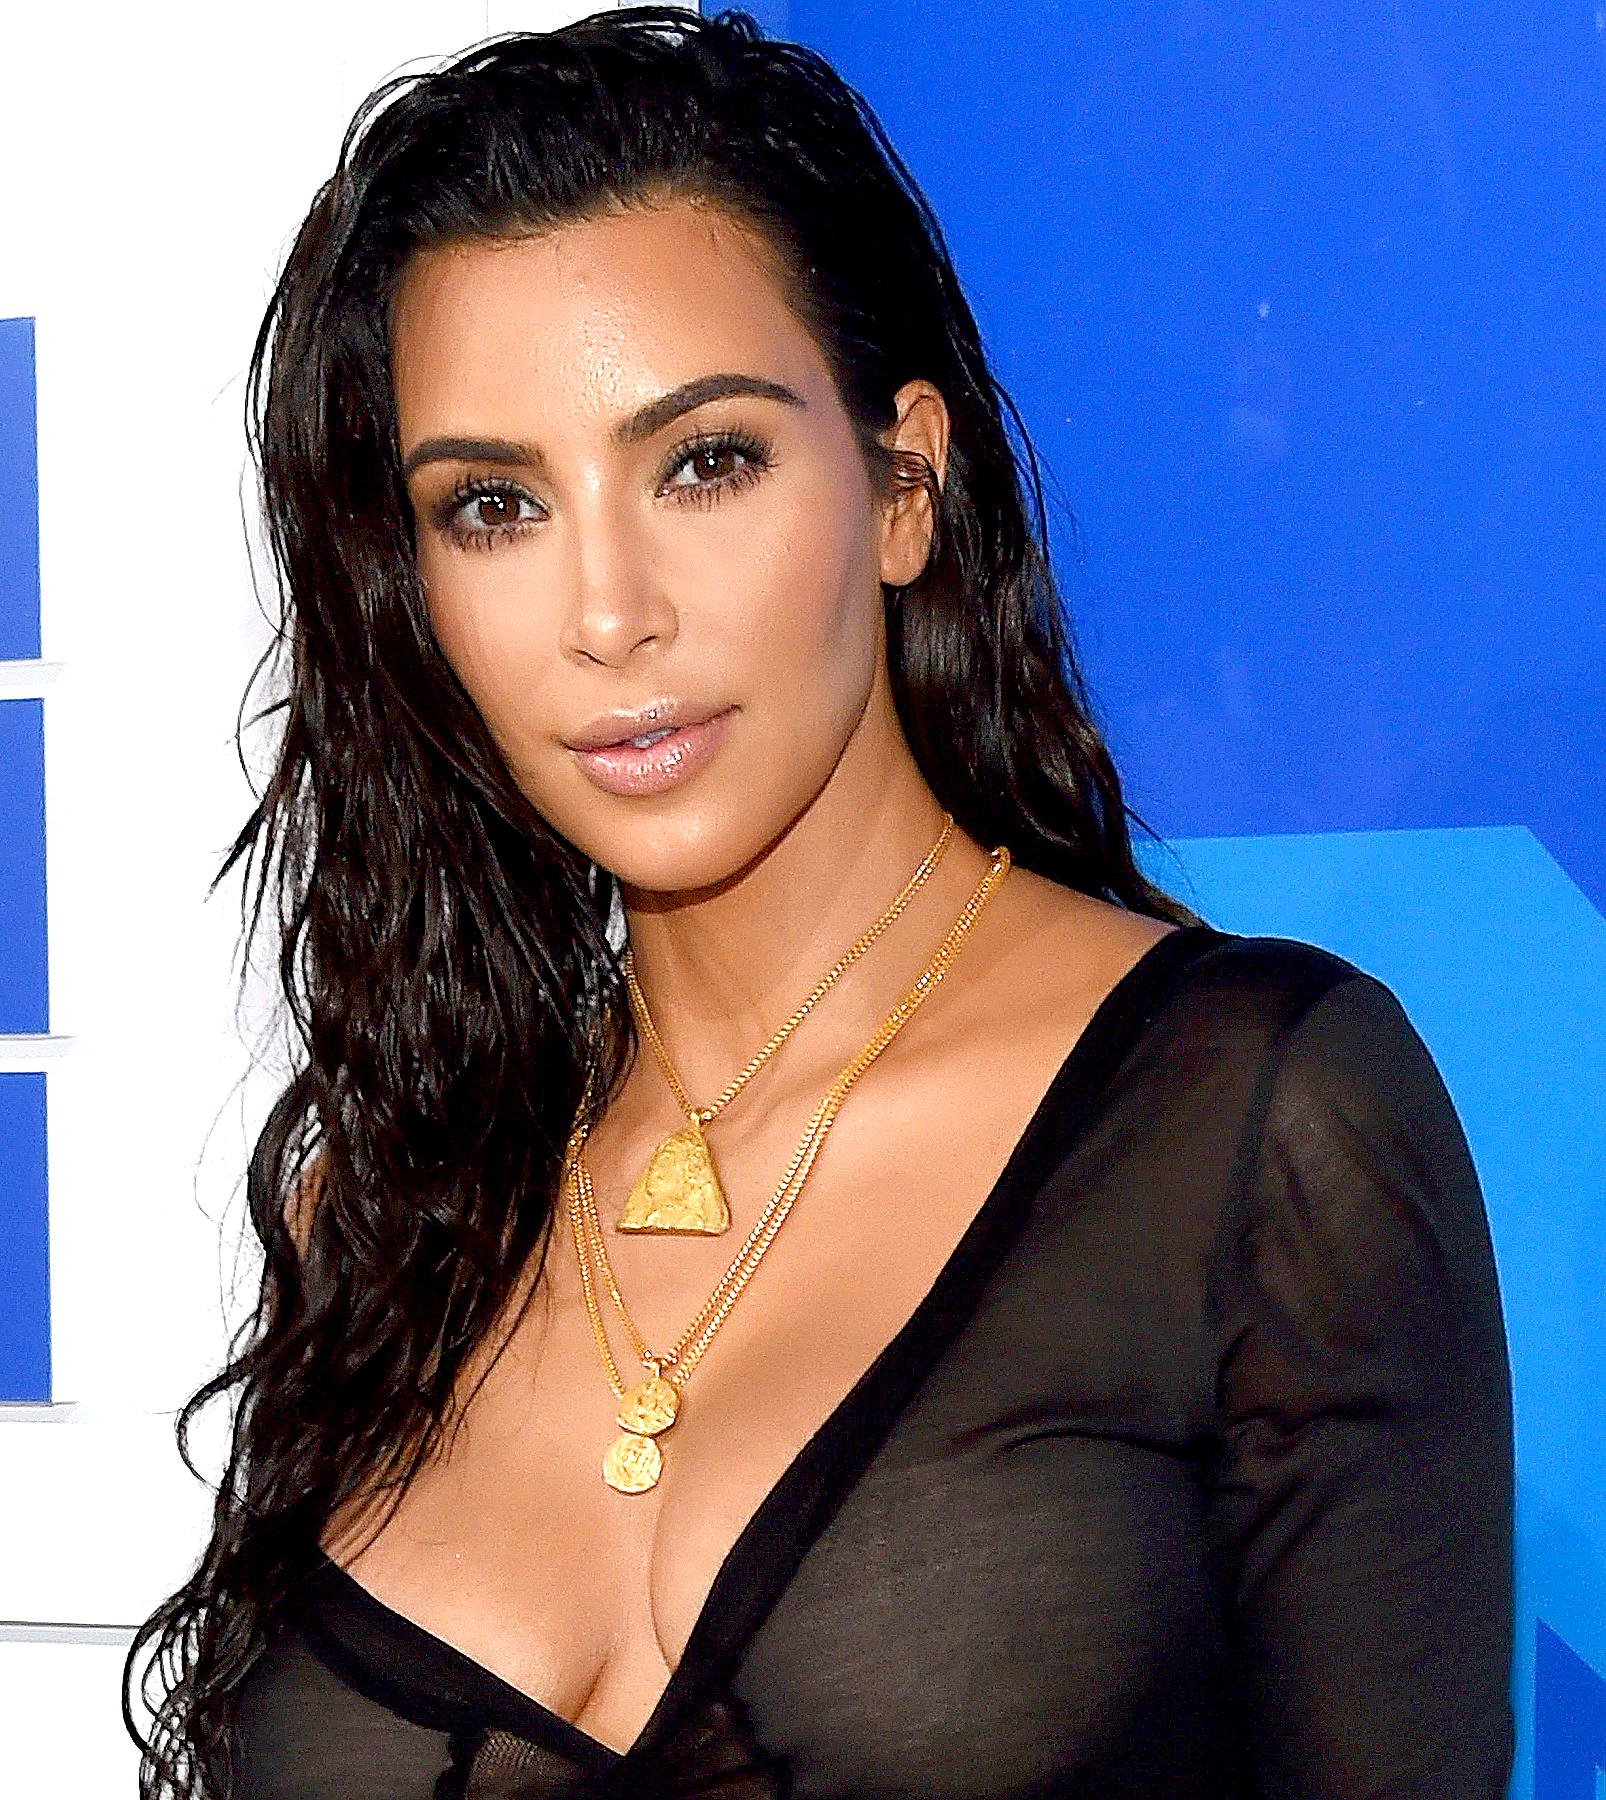 Kim Kardashian attends the 2016 MTV Video Music Awards at Madison Square Garden on August 28, 2016 in New York City.